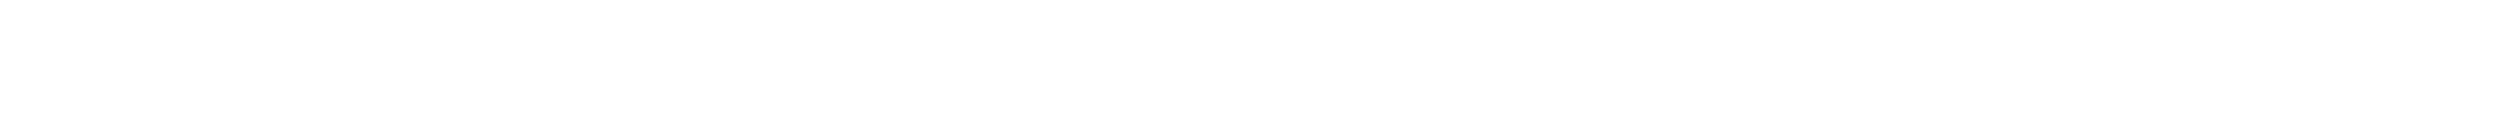 2 TRAJAN-Font-WHITE-ELLIOTT-BROTHERS-TRANSPARENT-ONE-LINE.png